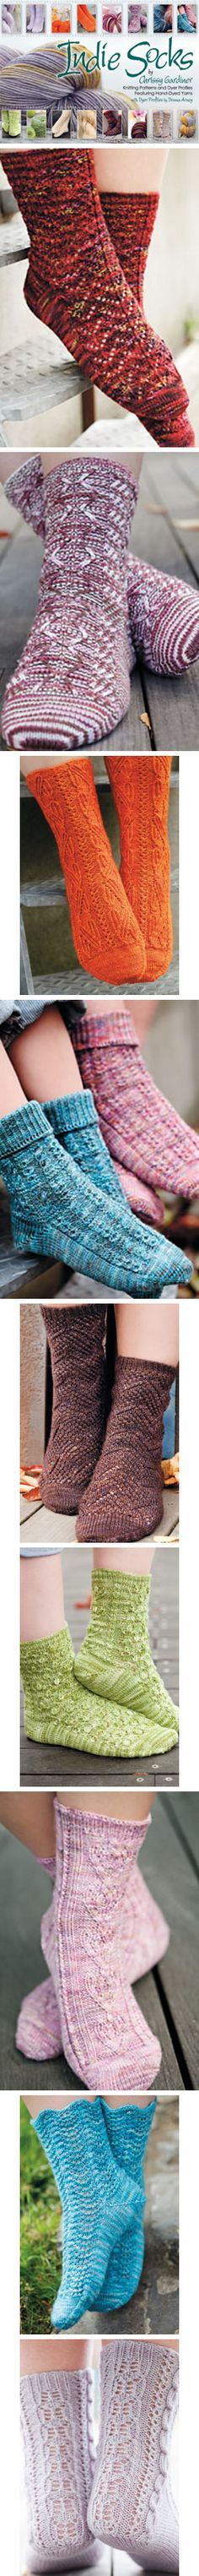 """Indie Socks: If you love hand-dyed yarns but don't always know what to knit with them and want to learn about independent yarn dyers--this is the book for you! """"Indie Knits"""" takes you behind the scenes with profiles of 25 talented indie dyers written by Donna Arney, accompanied by designs from sock master Chrissy Gardiner featuring a yarn from each dyer. Chrissy also includes tips and tricks for working with challenging colorways and selecting the best pattern to go with your chosen yarn."""